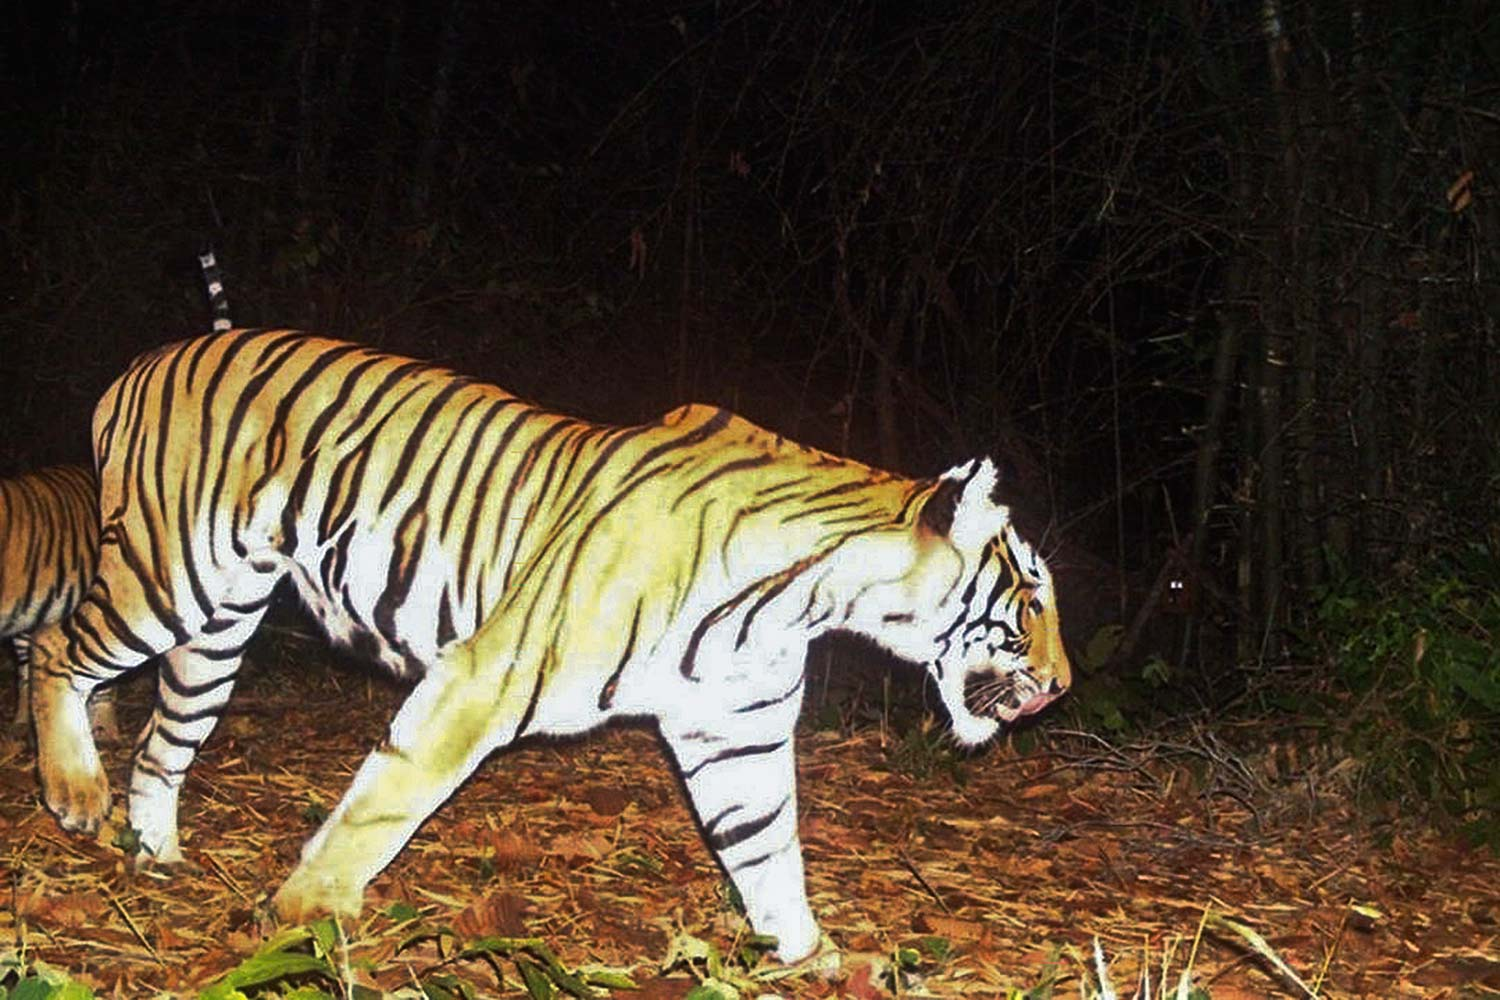 A tiger is photographed hunting for food at night in Huai Kha Khaeng Wildlife Sanctuary.